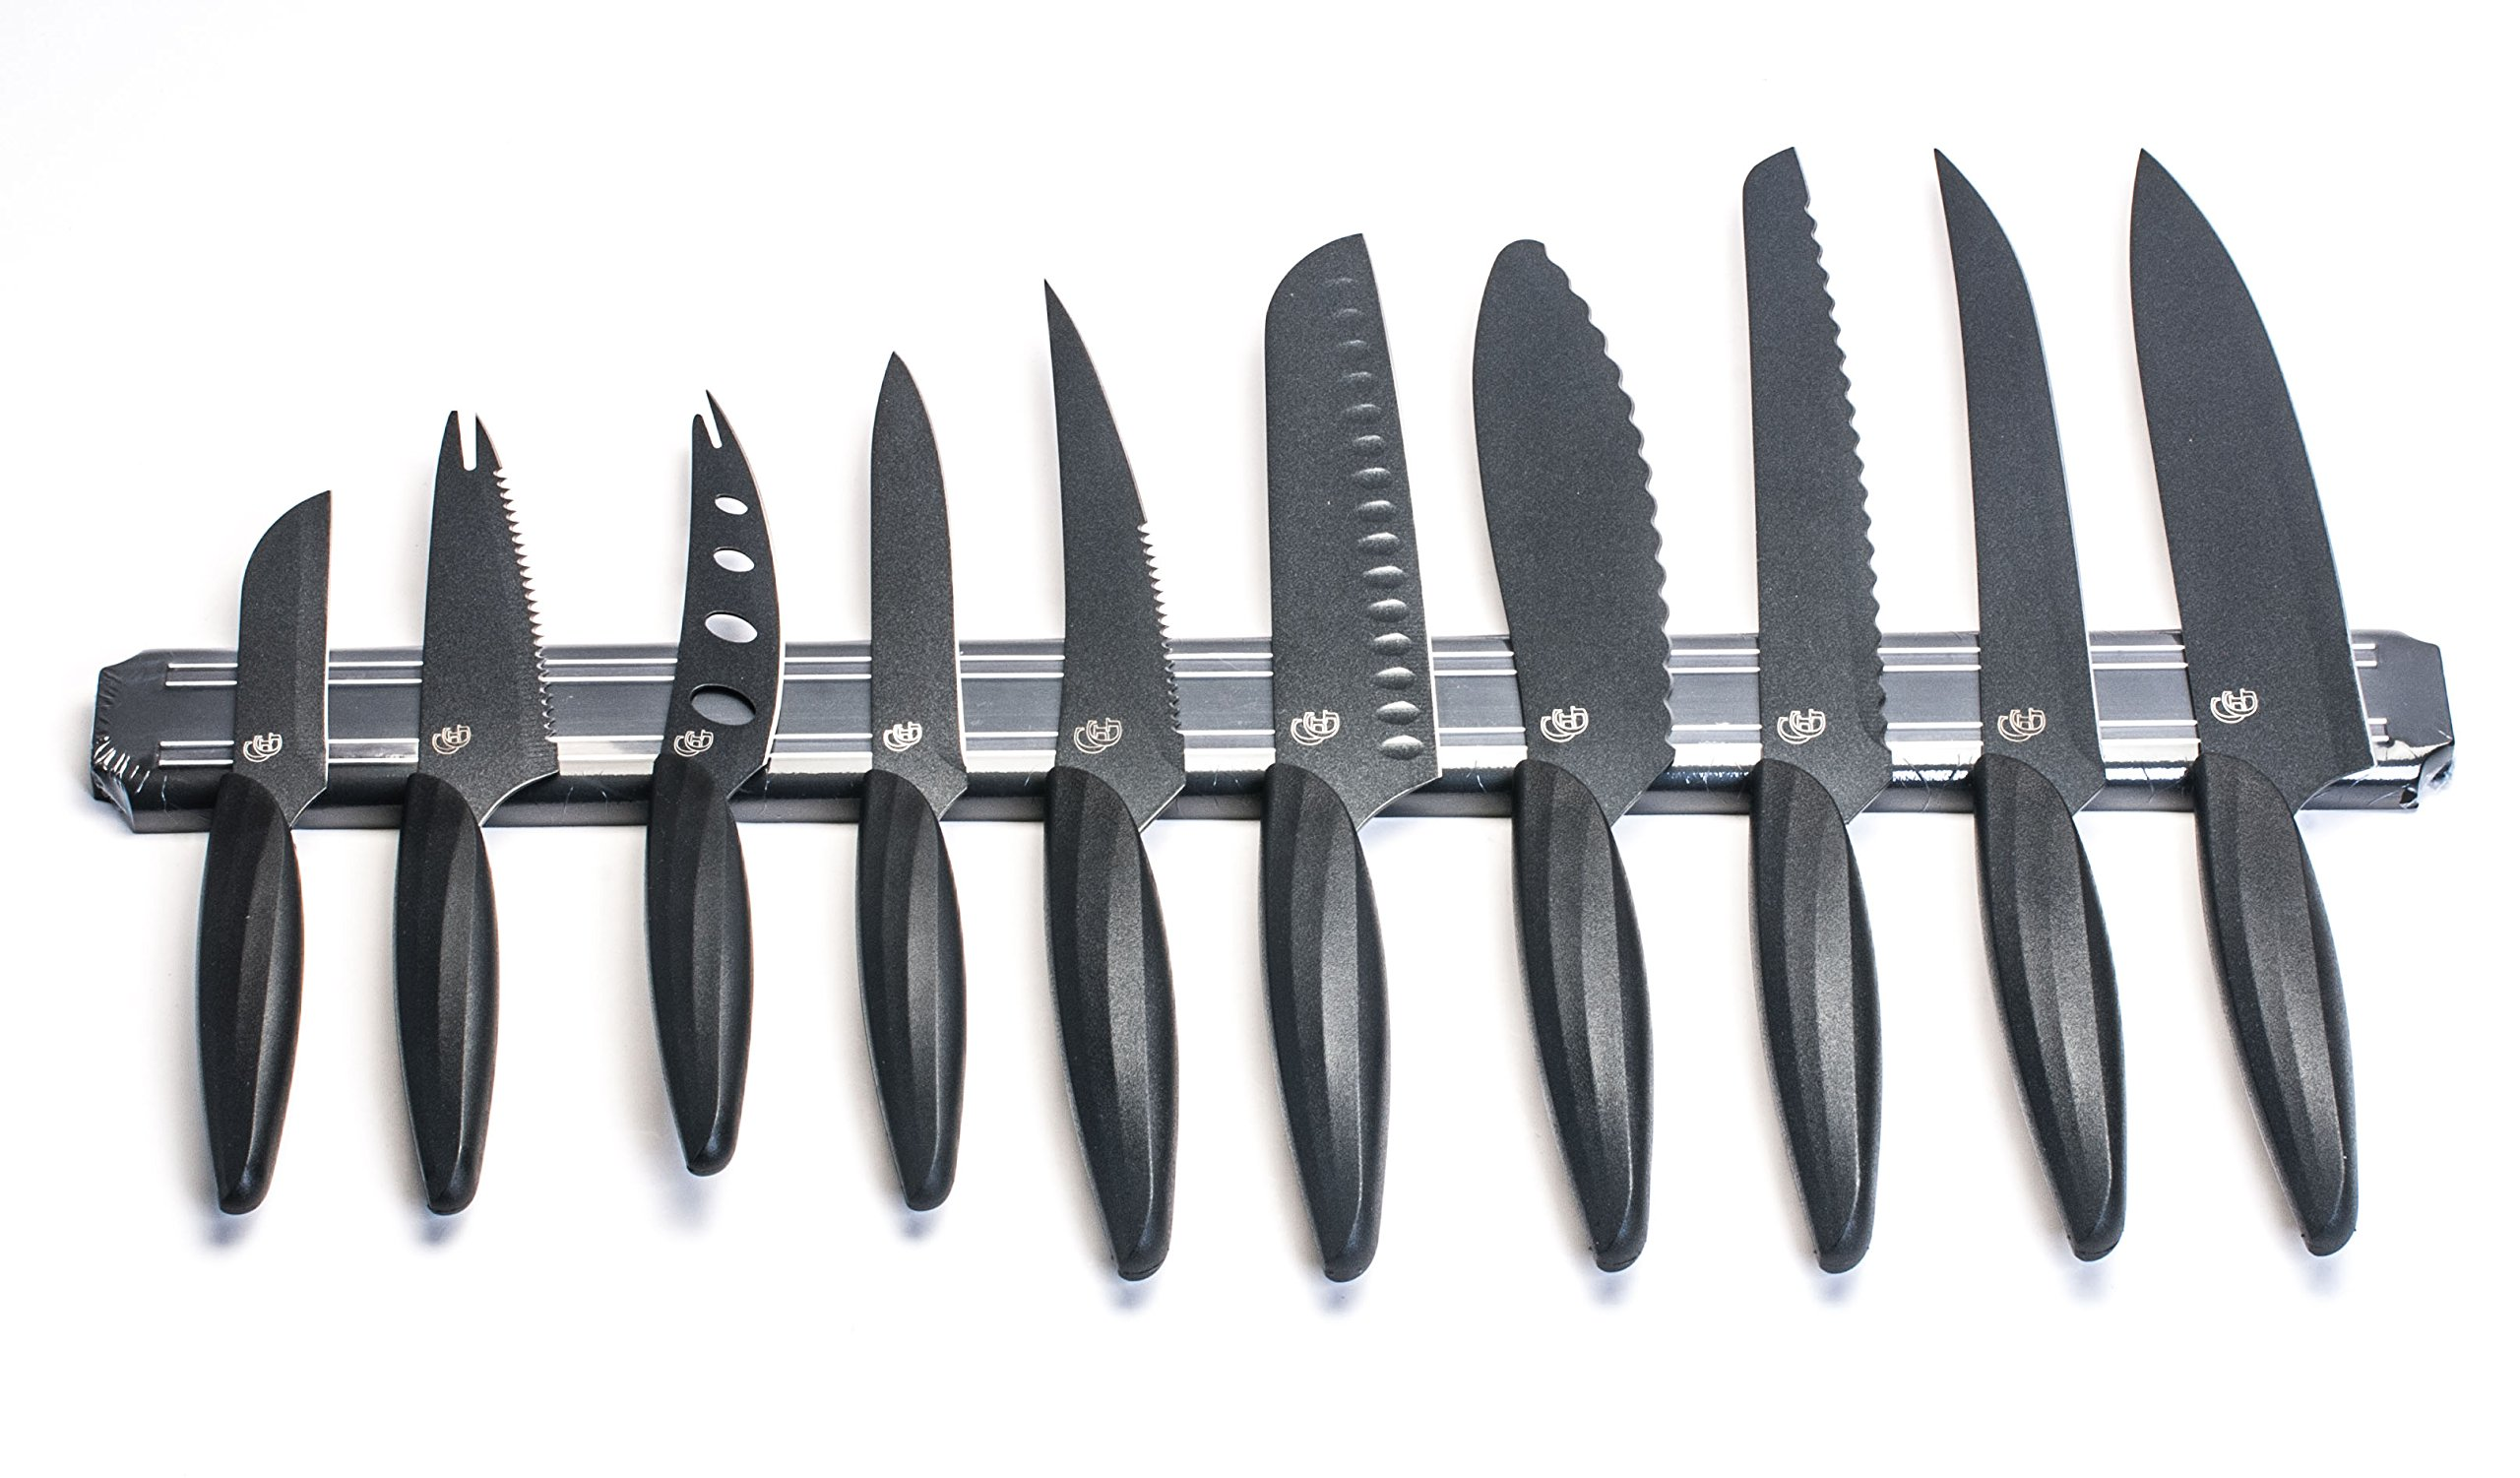 GELA EK-0848 10 Piece Knife Set With Magnetic Bar, 3'', Black by Gela (Image #1)